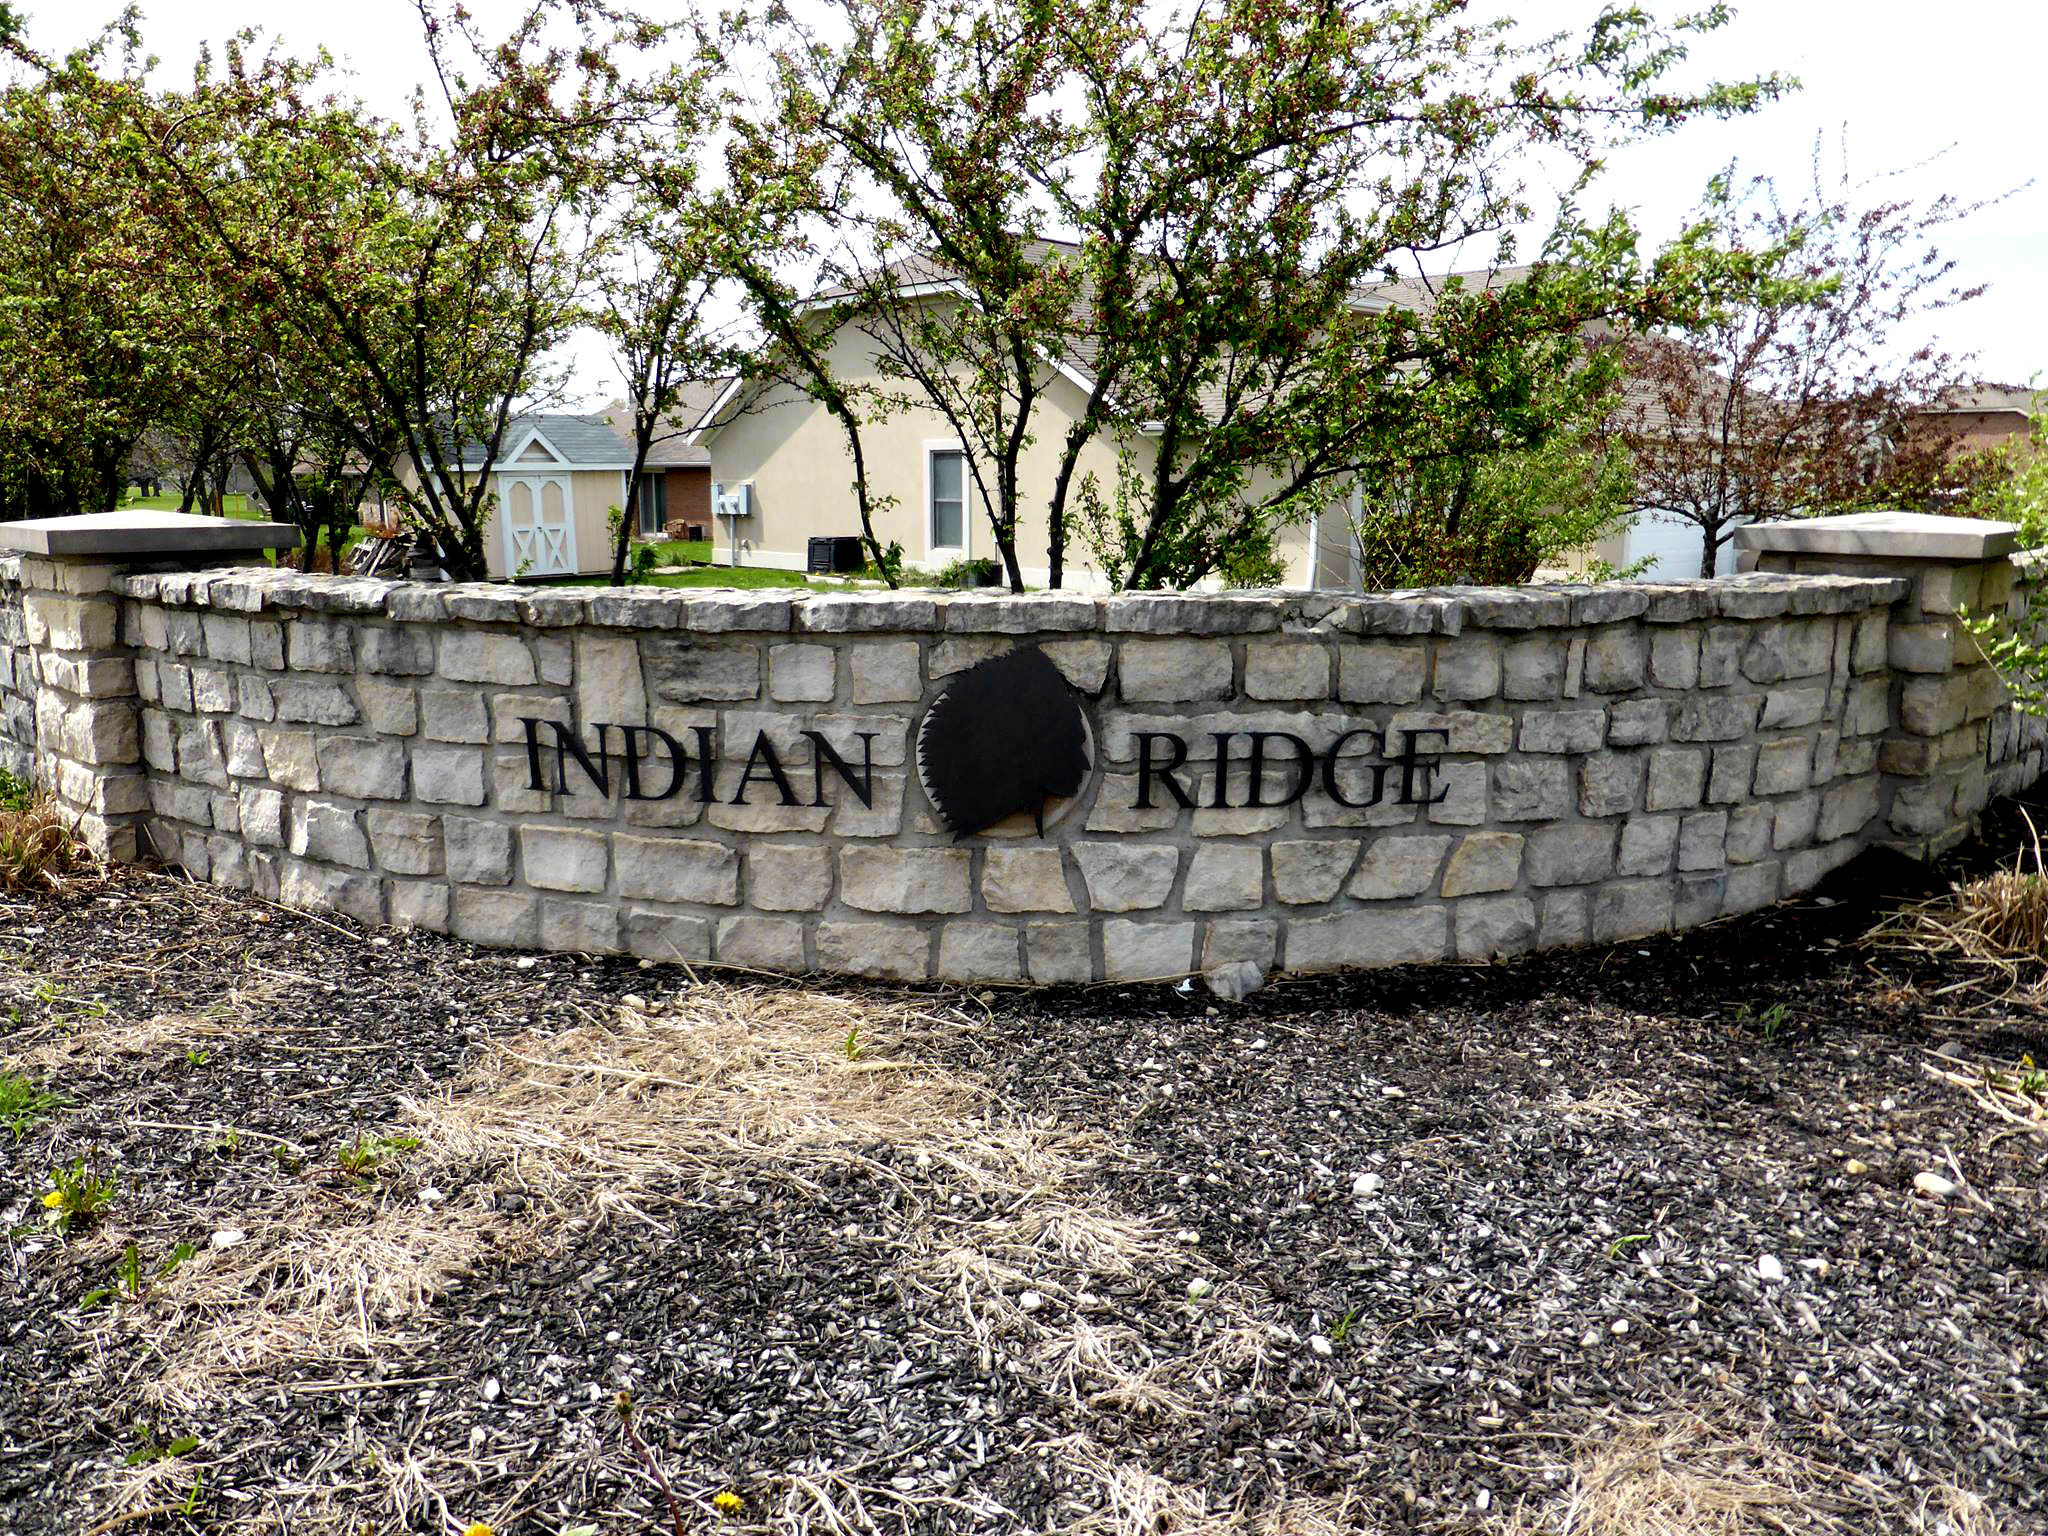 IndianRidgeFeatured1